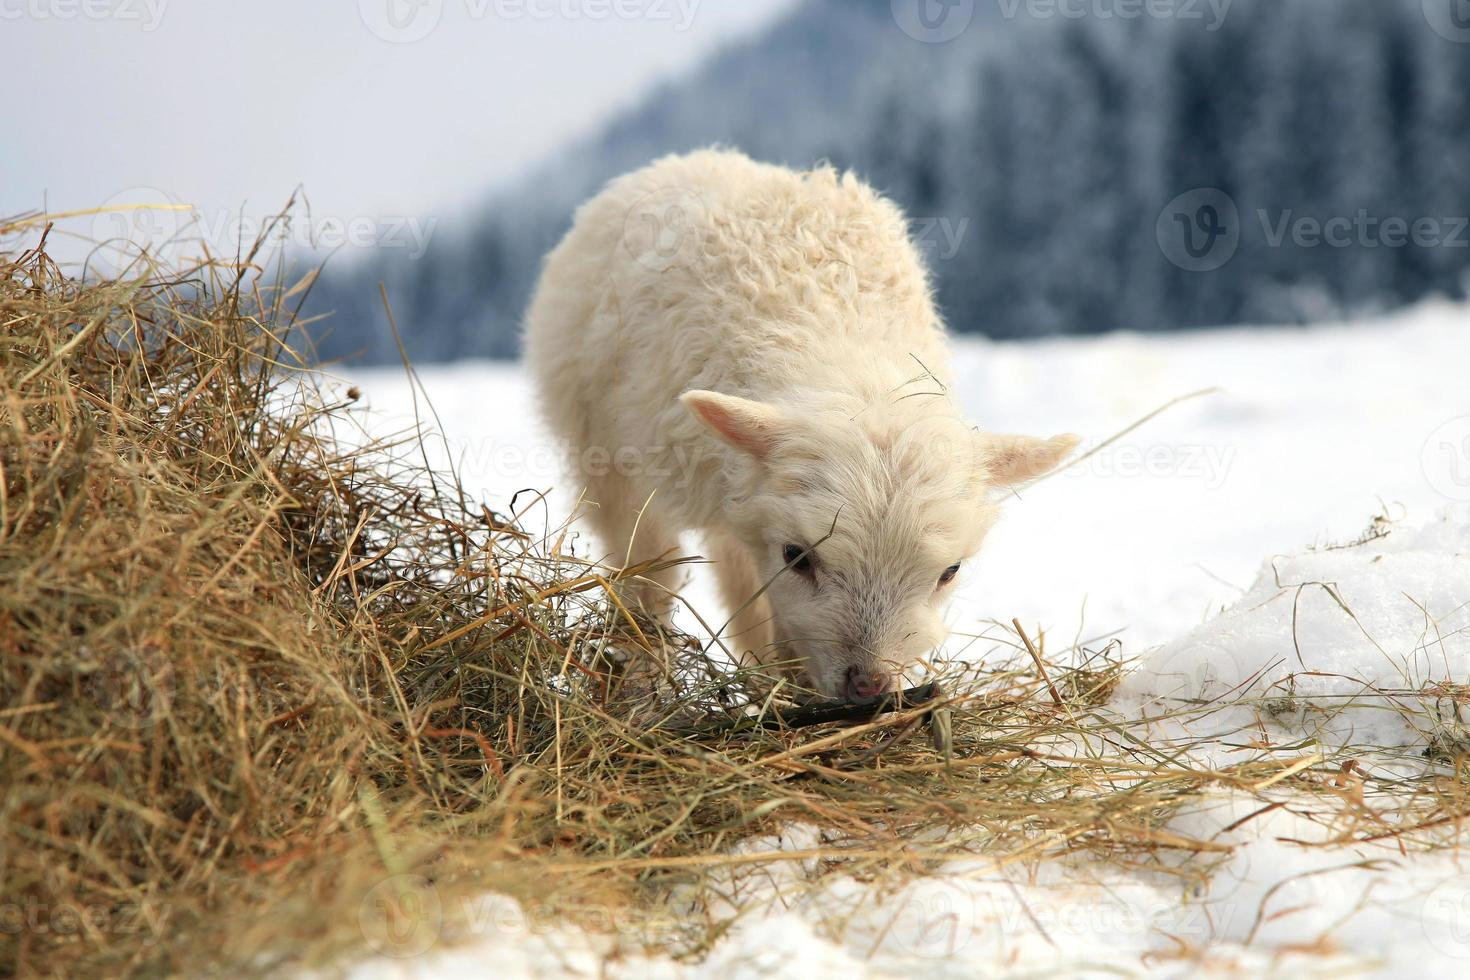 Portrait of a baby sheep skudde grazing on straw in the snow photo